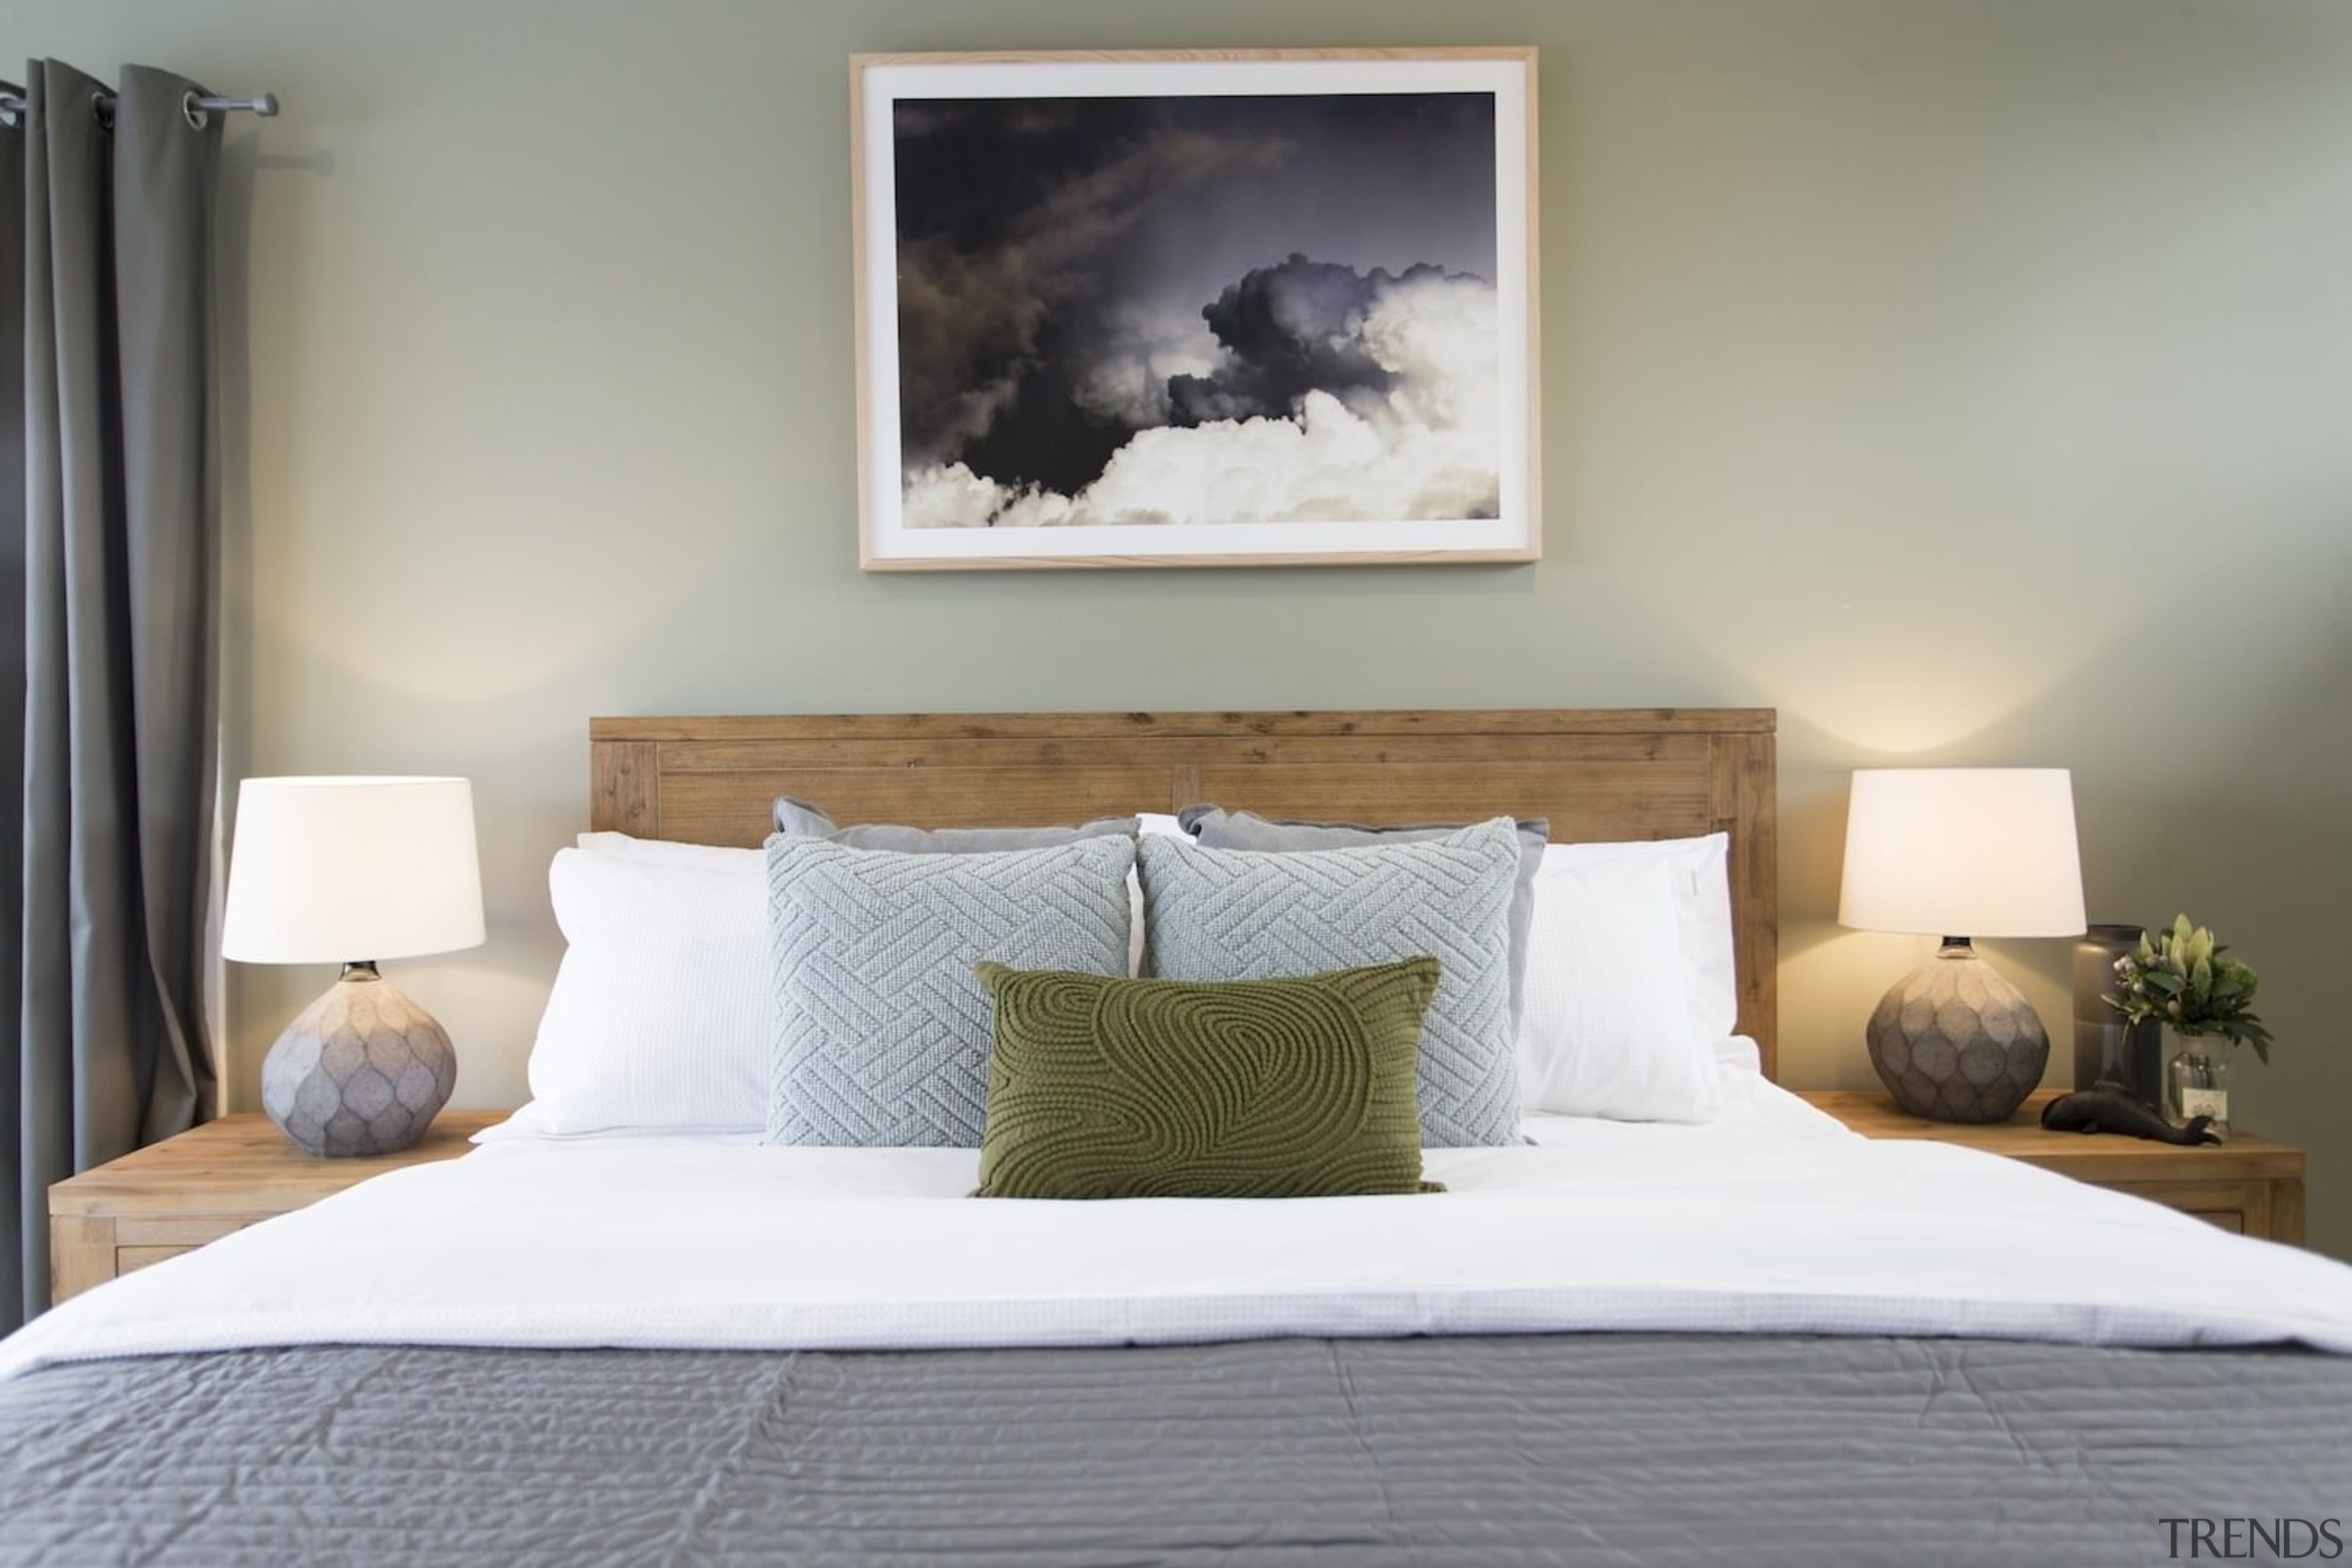 2018 will be the year of Raw Earth bed, bed frame, bedroom, furniture, home, interior design, mattress, room, suite, wall, gray, white